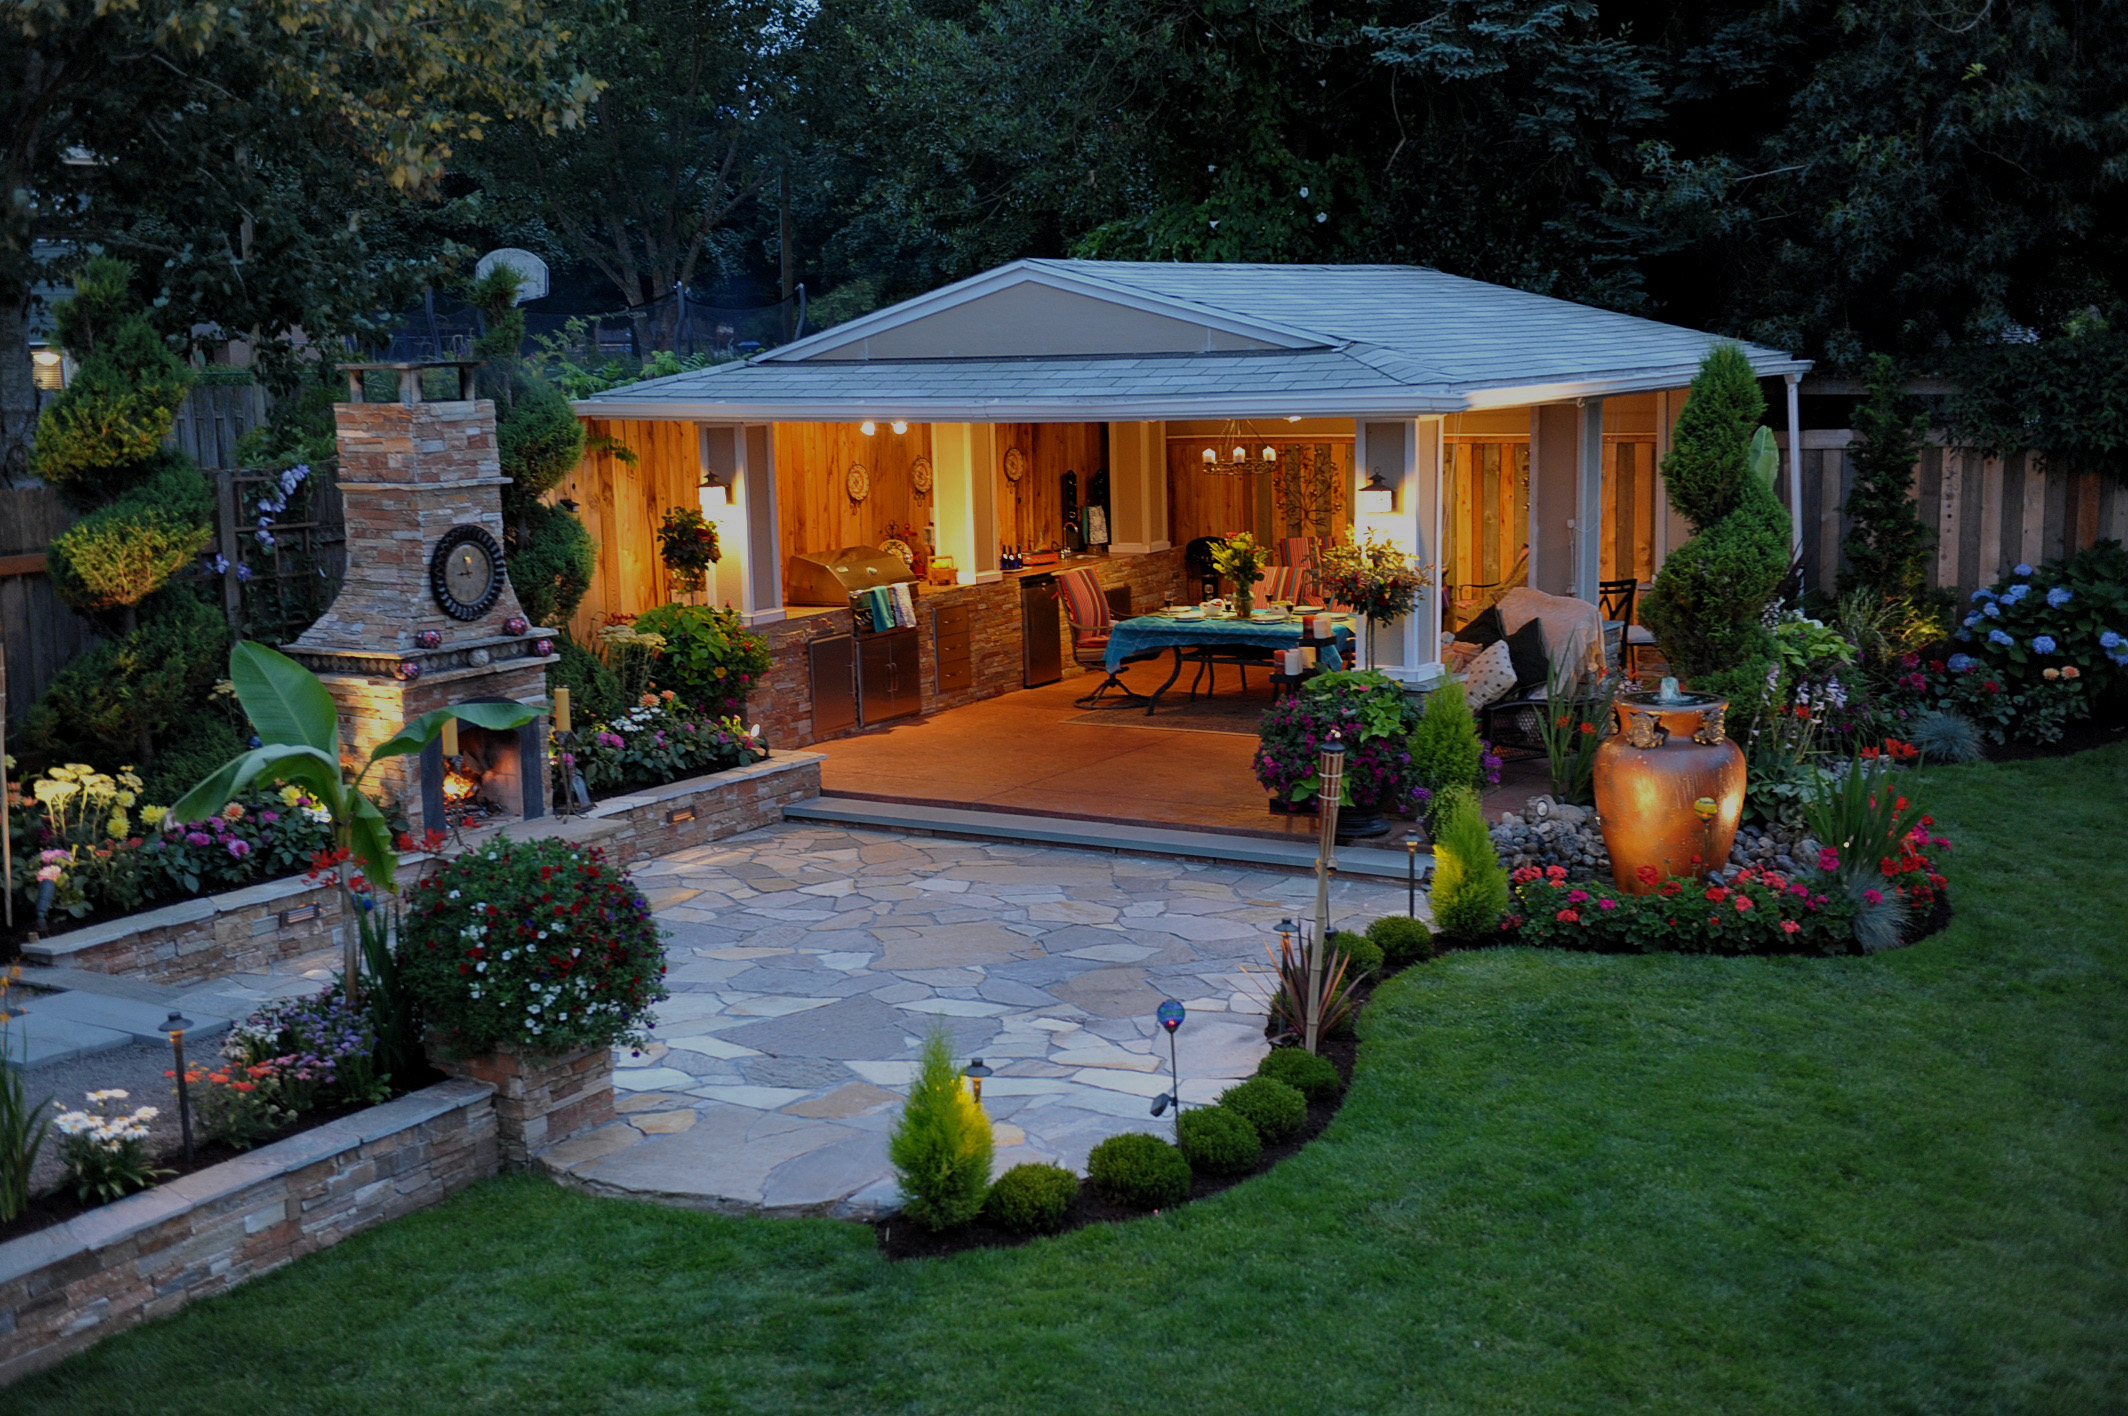 Southern Lawn Designs - Natural Stone & Full Rock Yard ... on Rock And Stone Outdoor Living id=26247